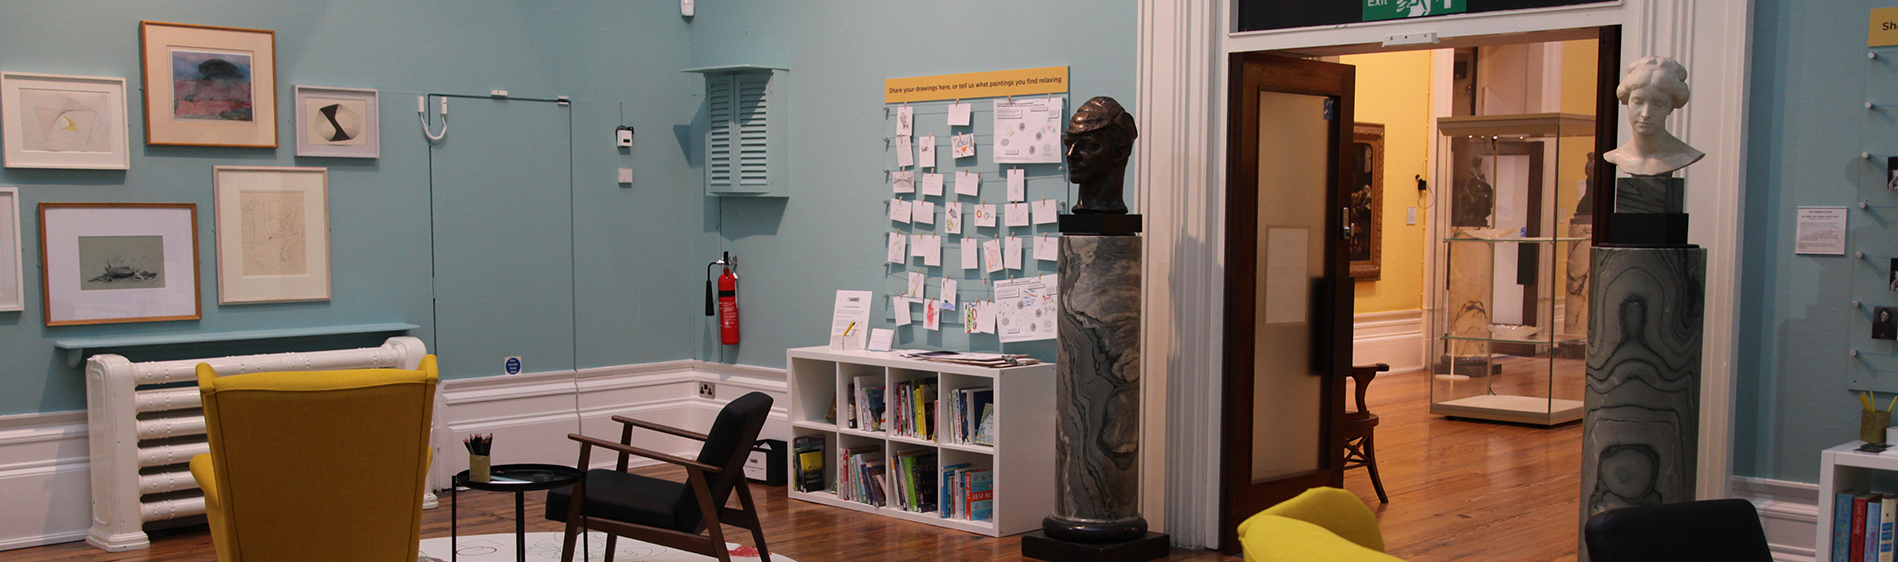 image of Wellbeing Gallery